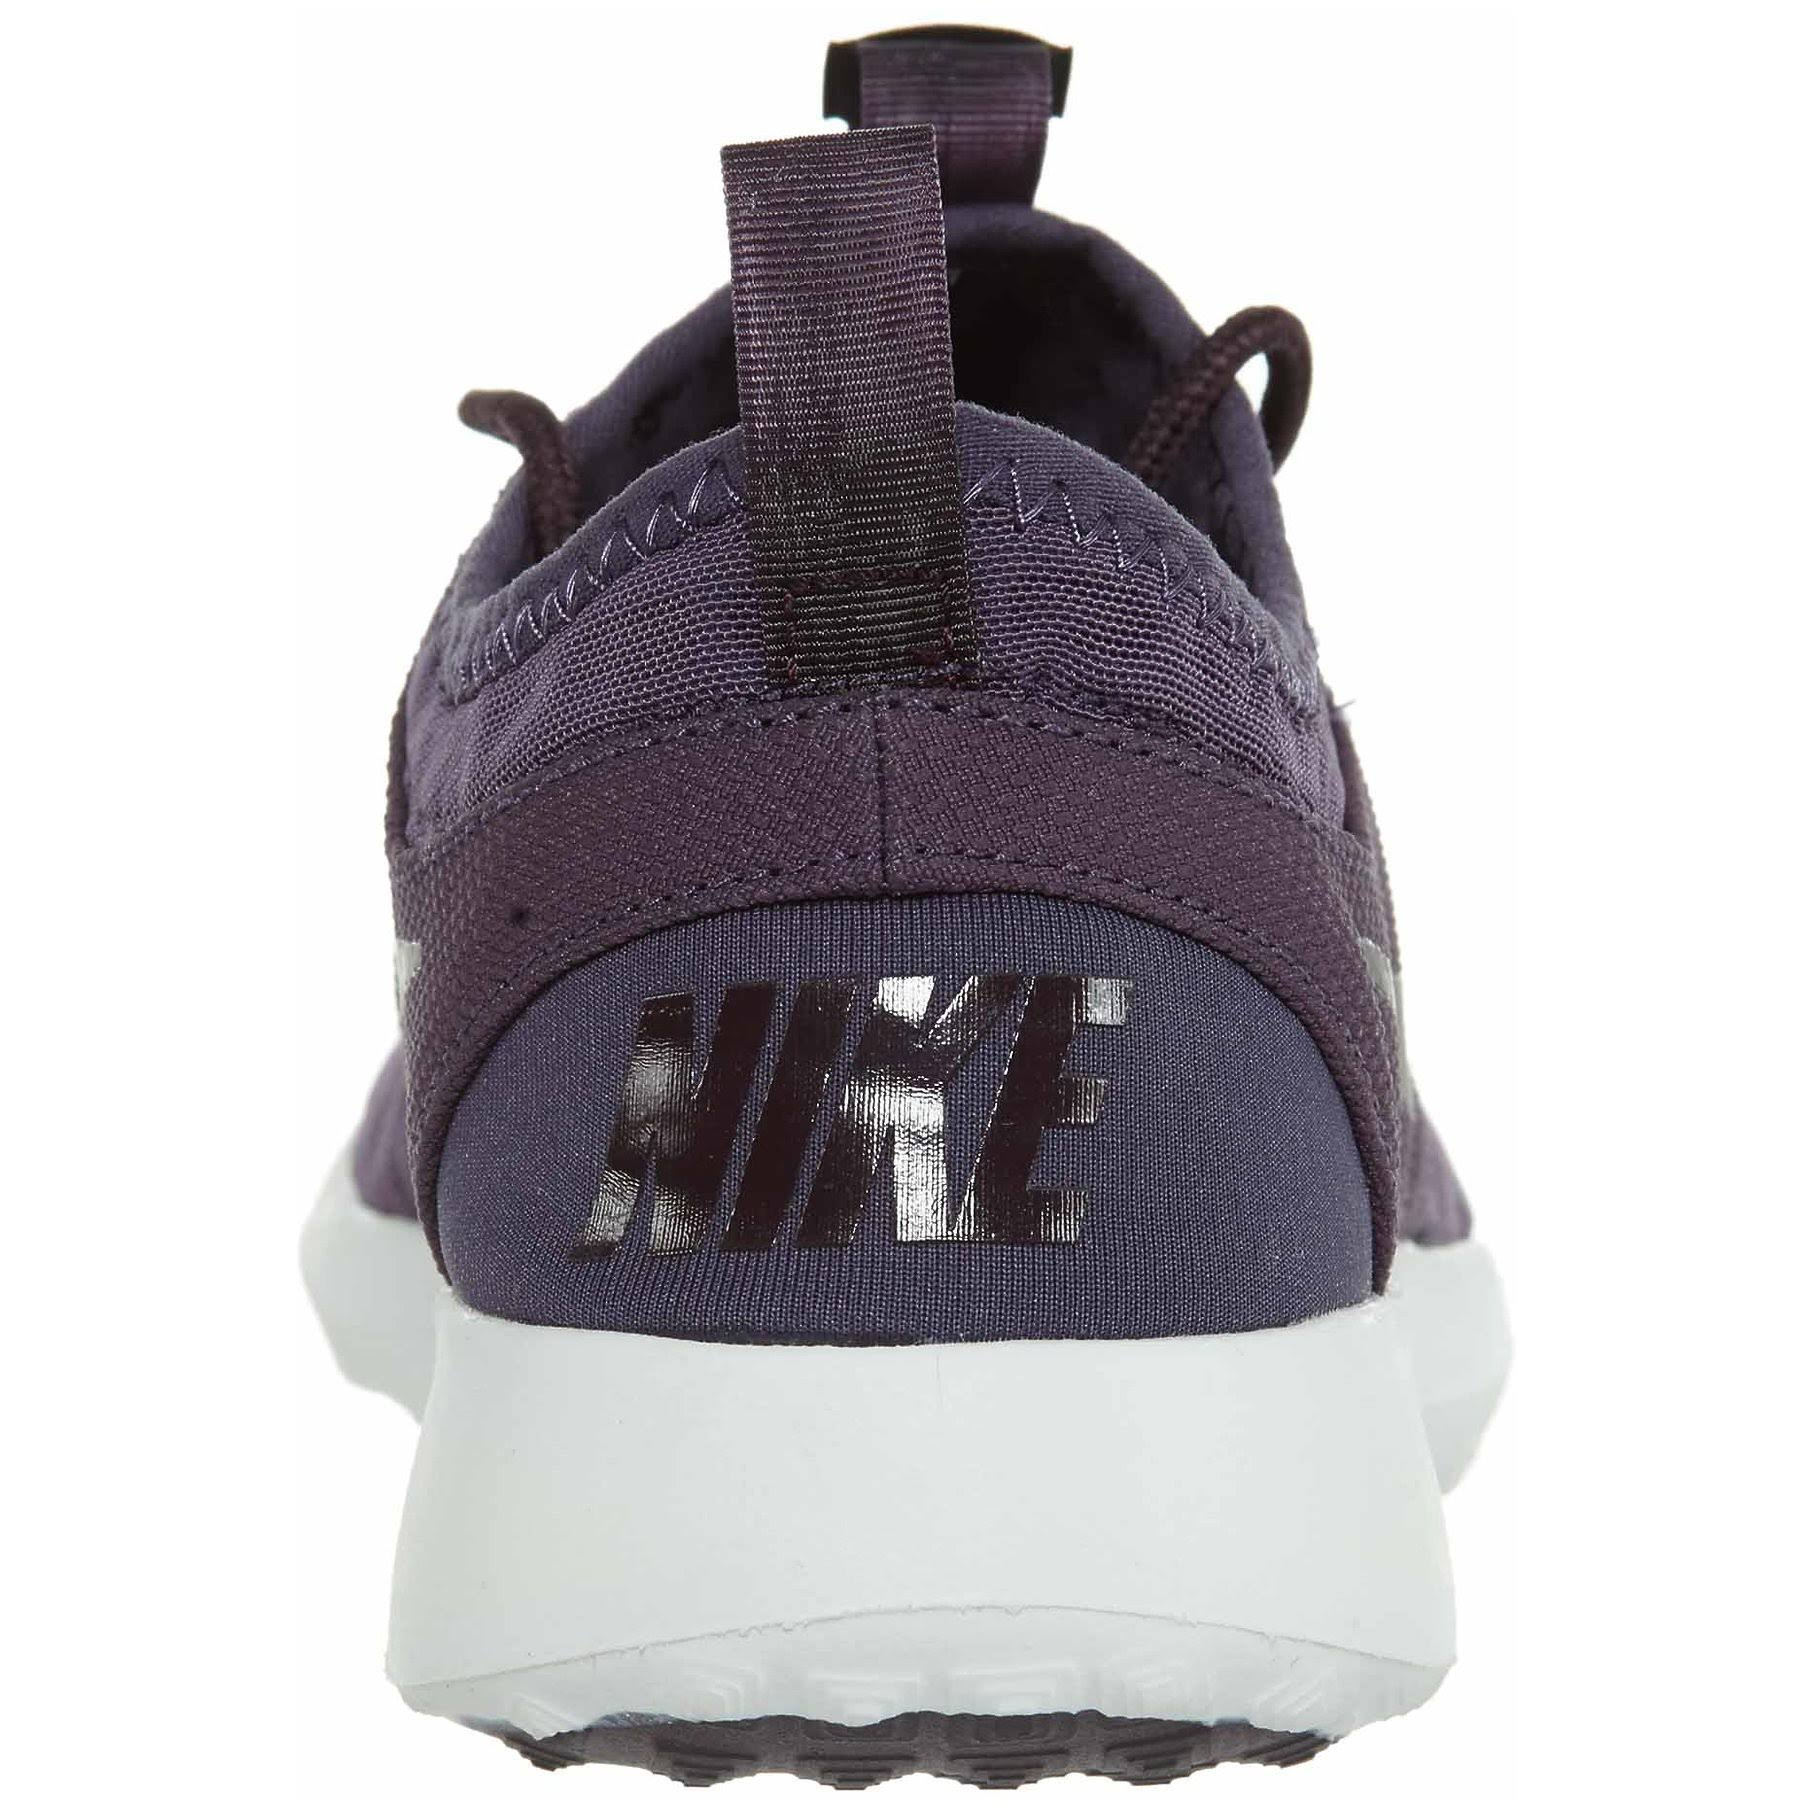 Womens Pewter 724979 Wine 7 Juvenate Nike Größe Training Dark Lila Raisin Schuhe 503 afwOxY